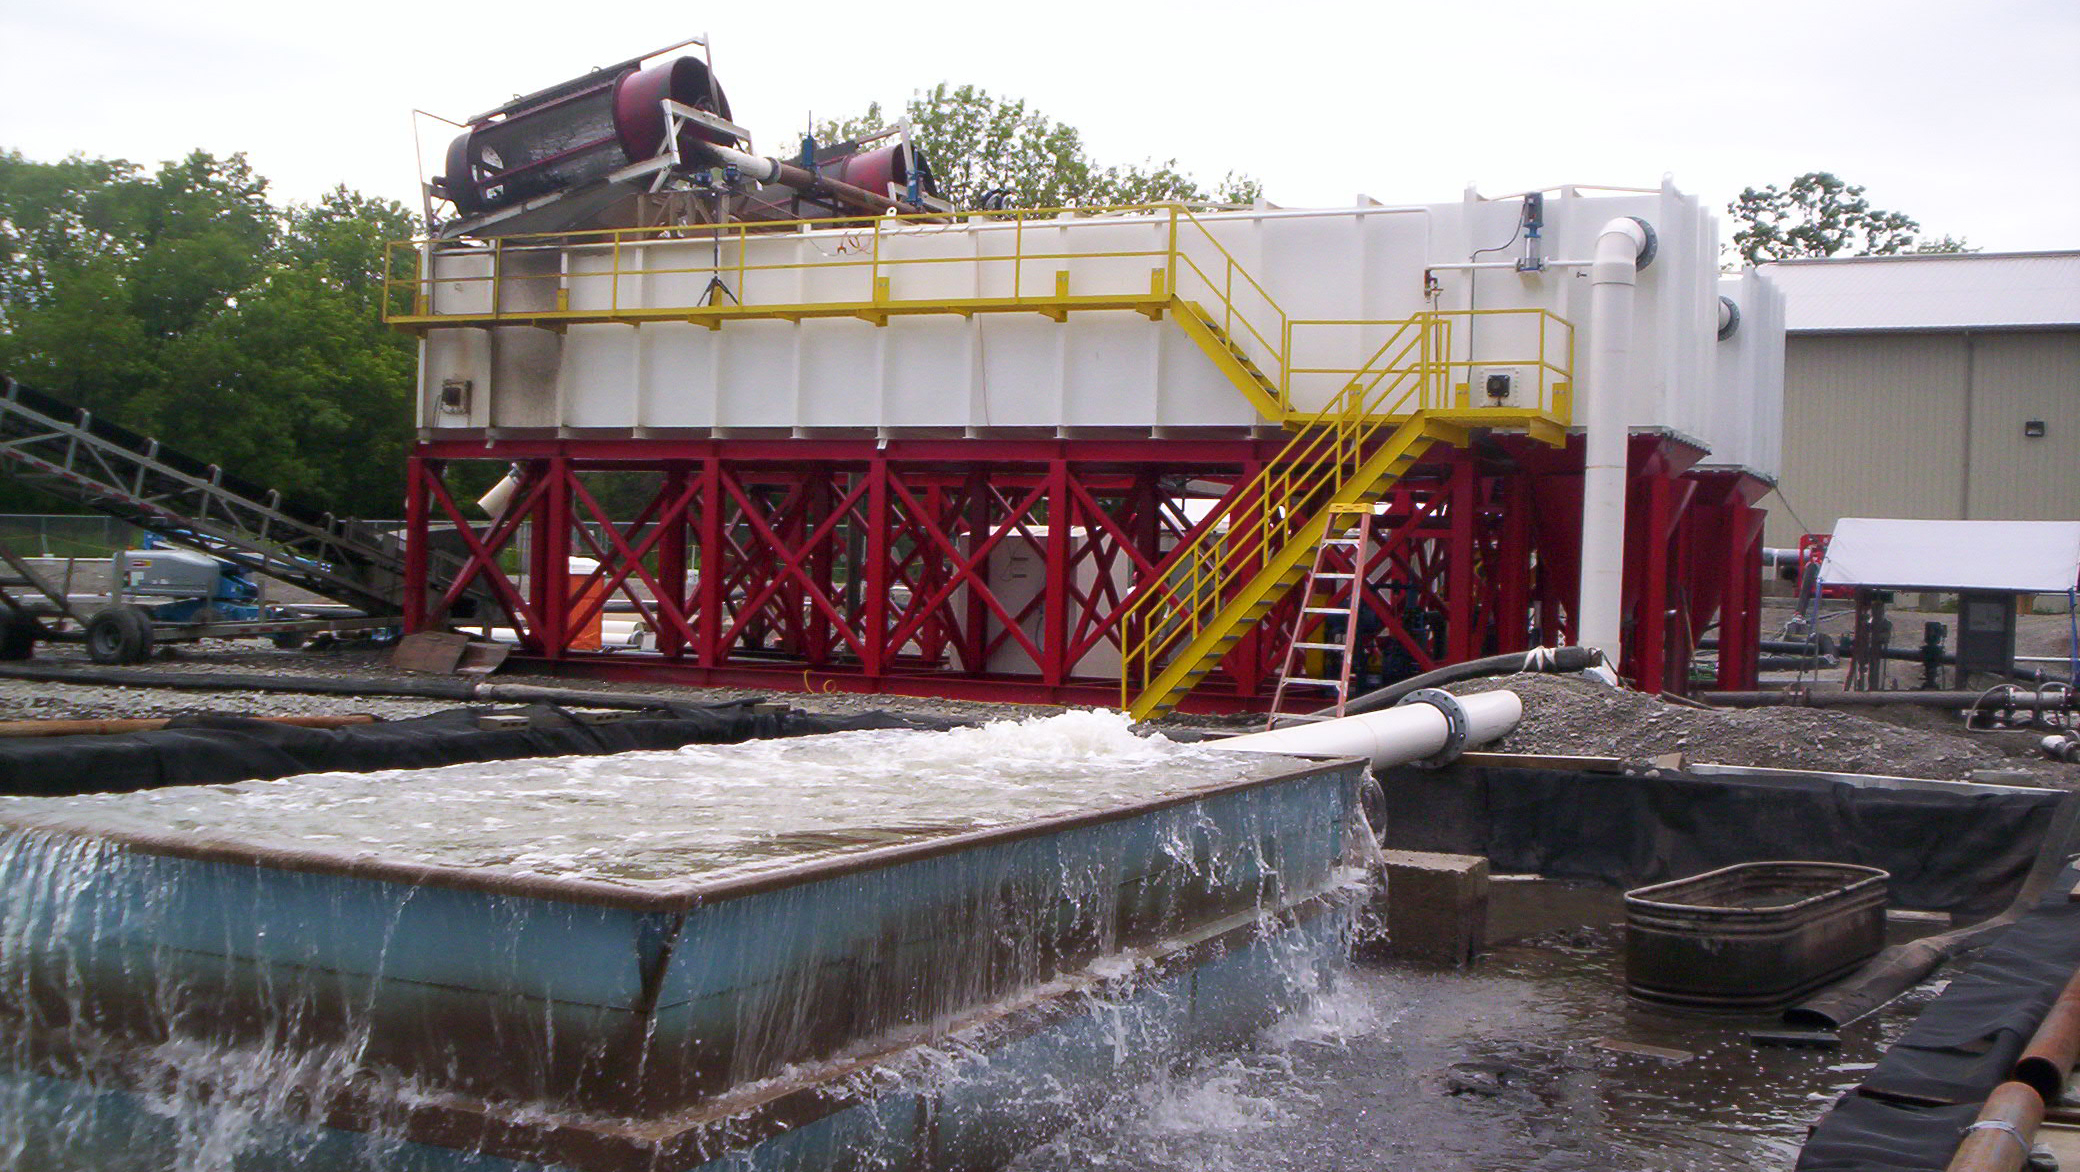 Large rectangular clarifiers in the background with rotary trommel screens on top of them and a clean water overflow basin in the foreground.